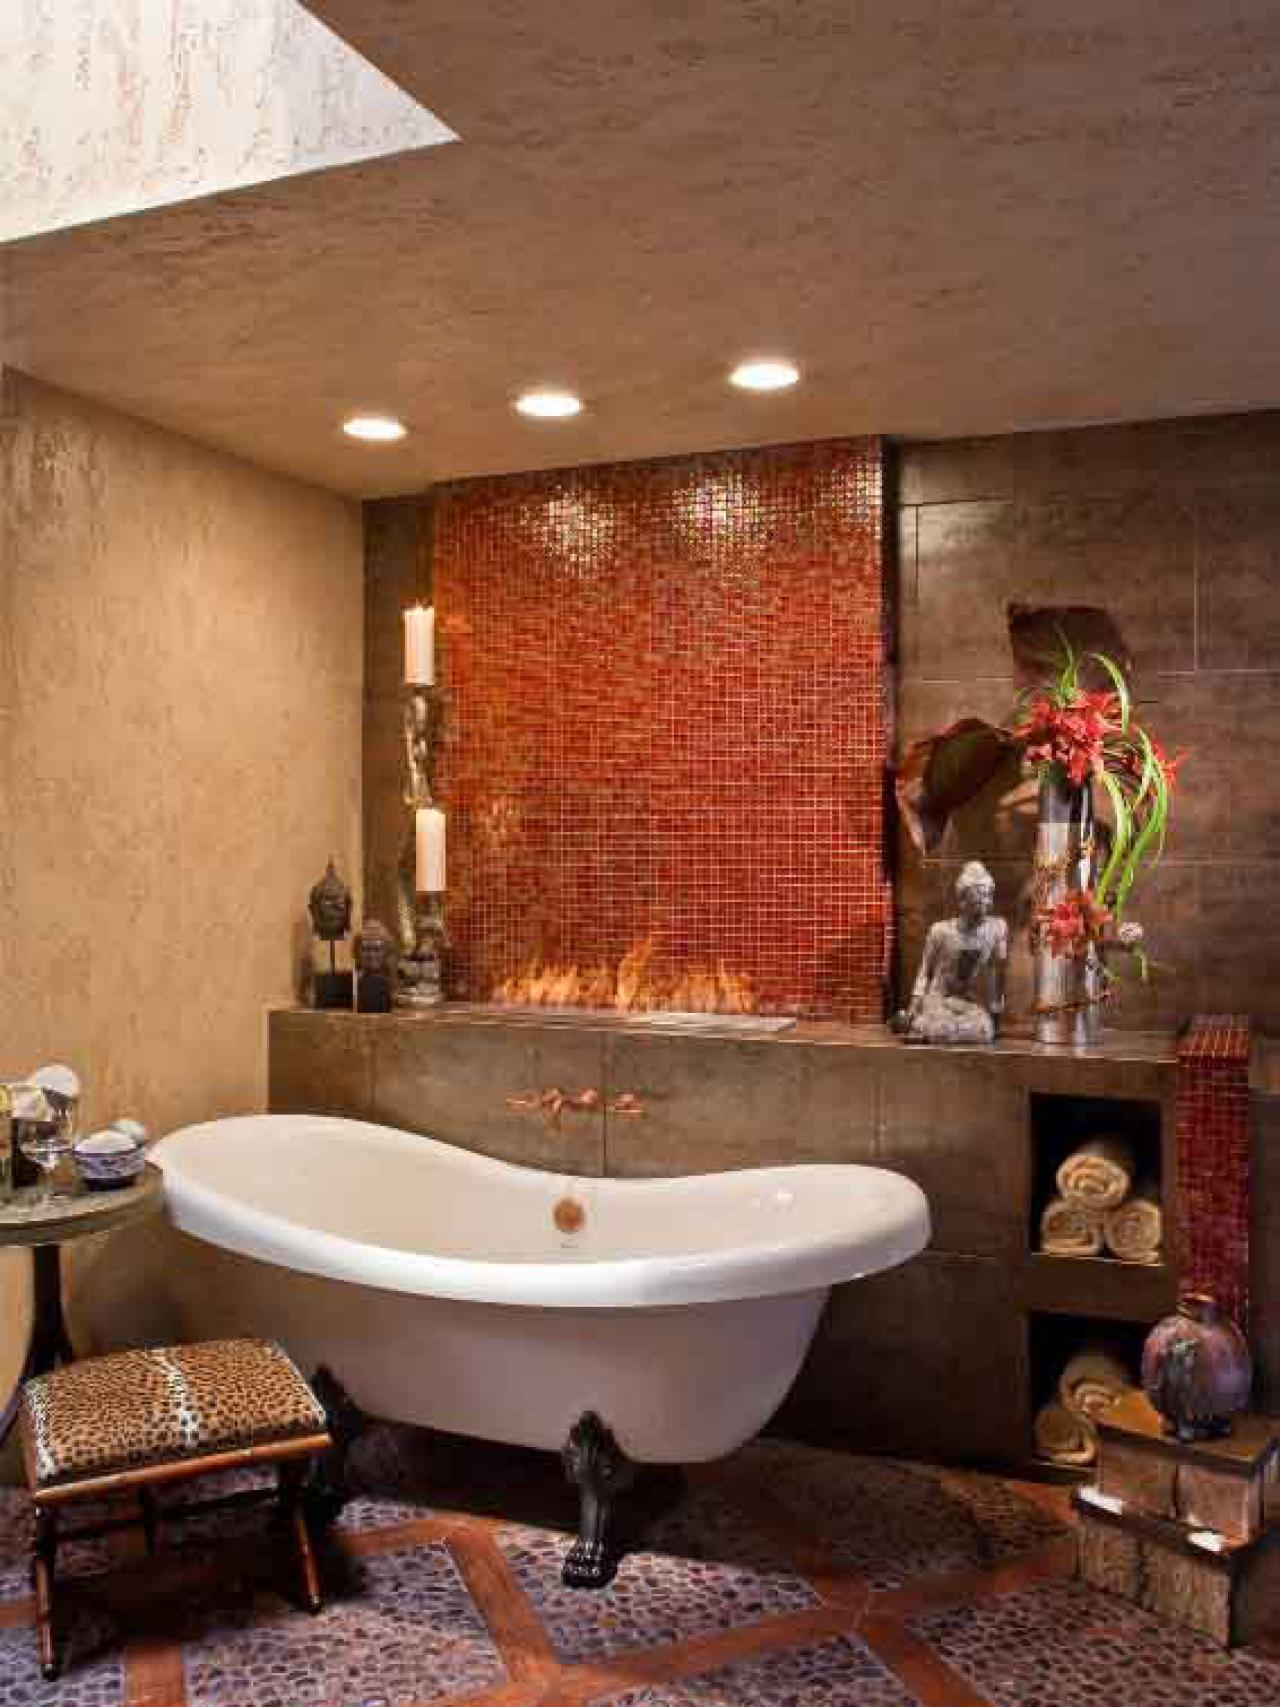 Soaking tub designs pictures ideas tips from hgtv for Asian small bathroom design